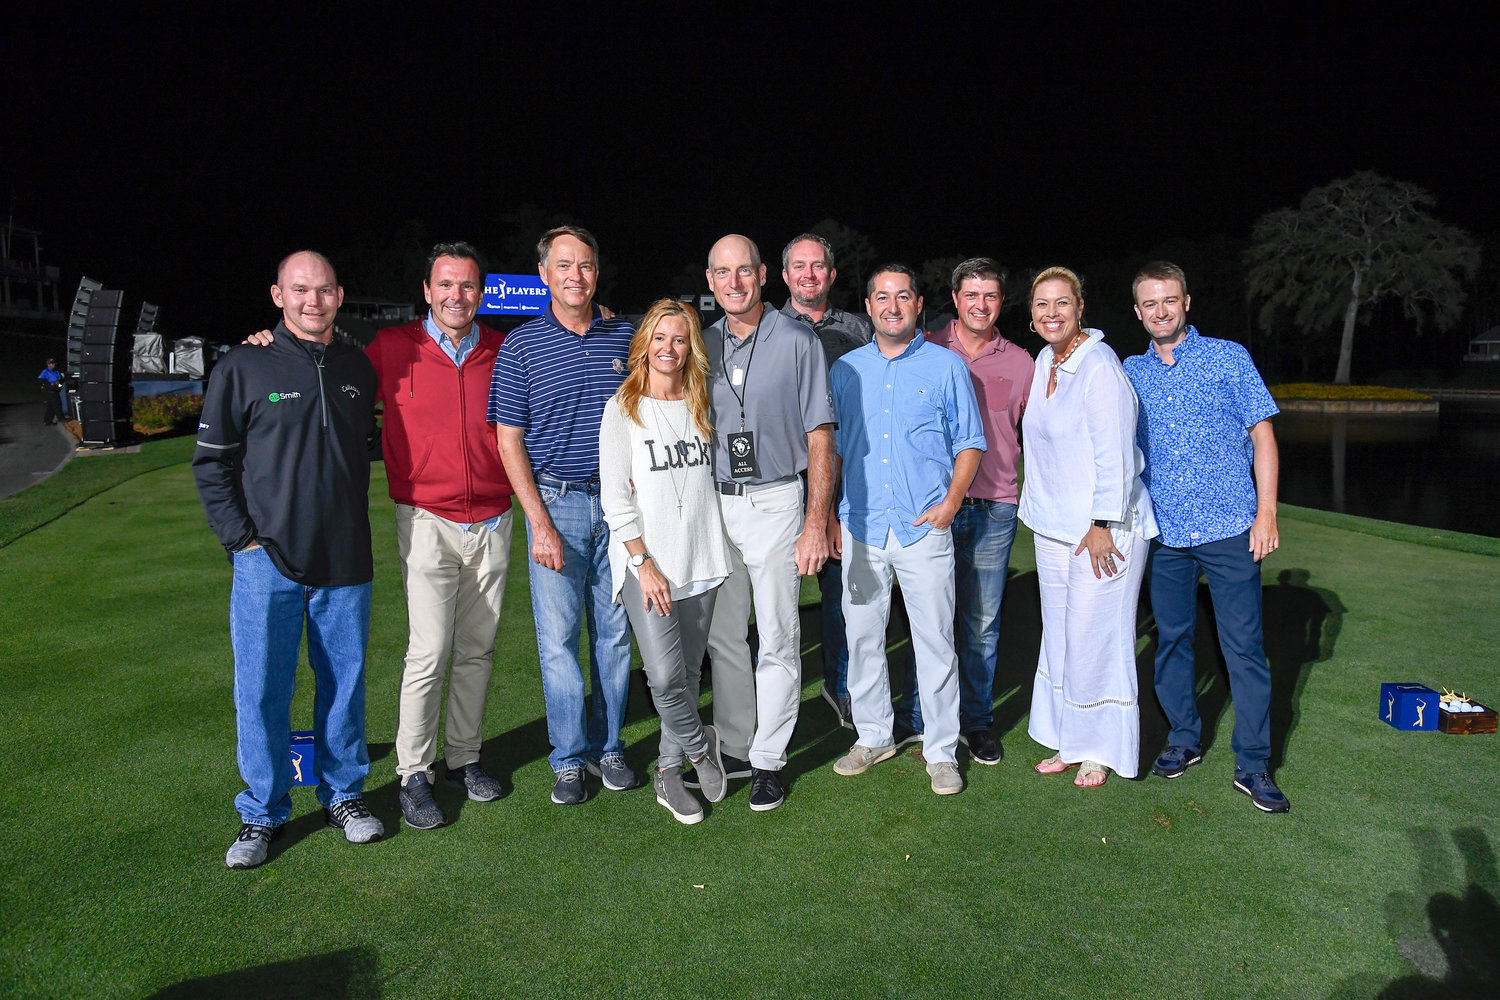 Tommy Gainey, Len Mattiace, Davis Love, Tabatha and Jim Furyk, Michelle McGann and Russell Knox at the Furyk and Friends charity shootout at TPC Sawgrass